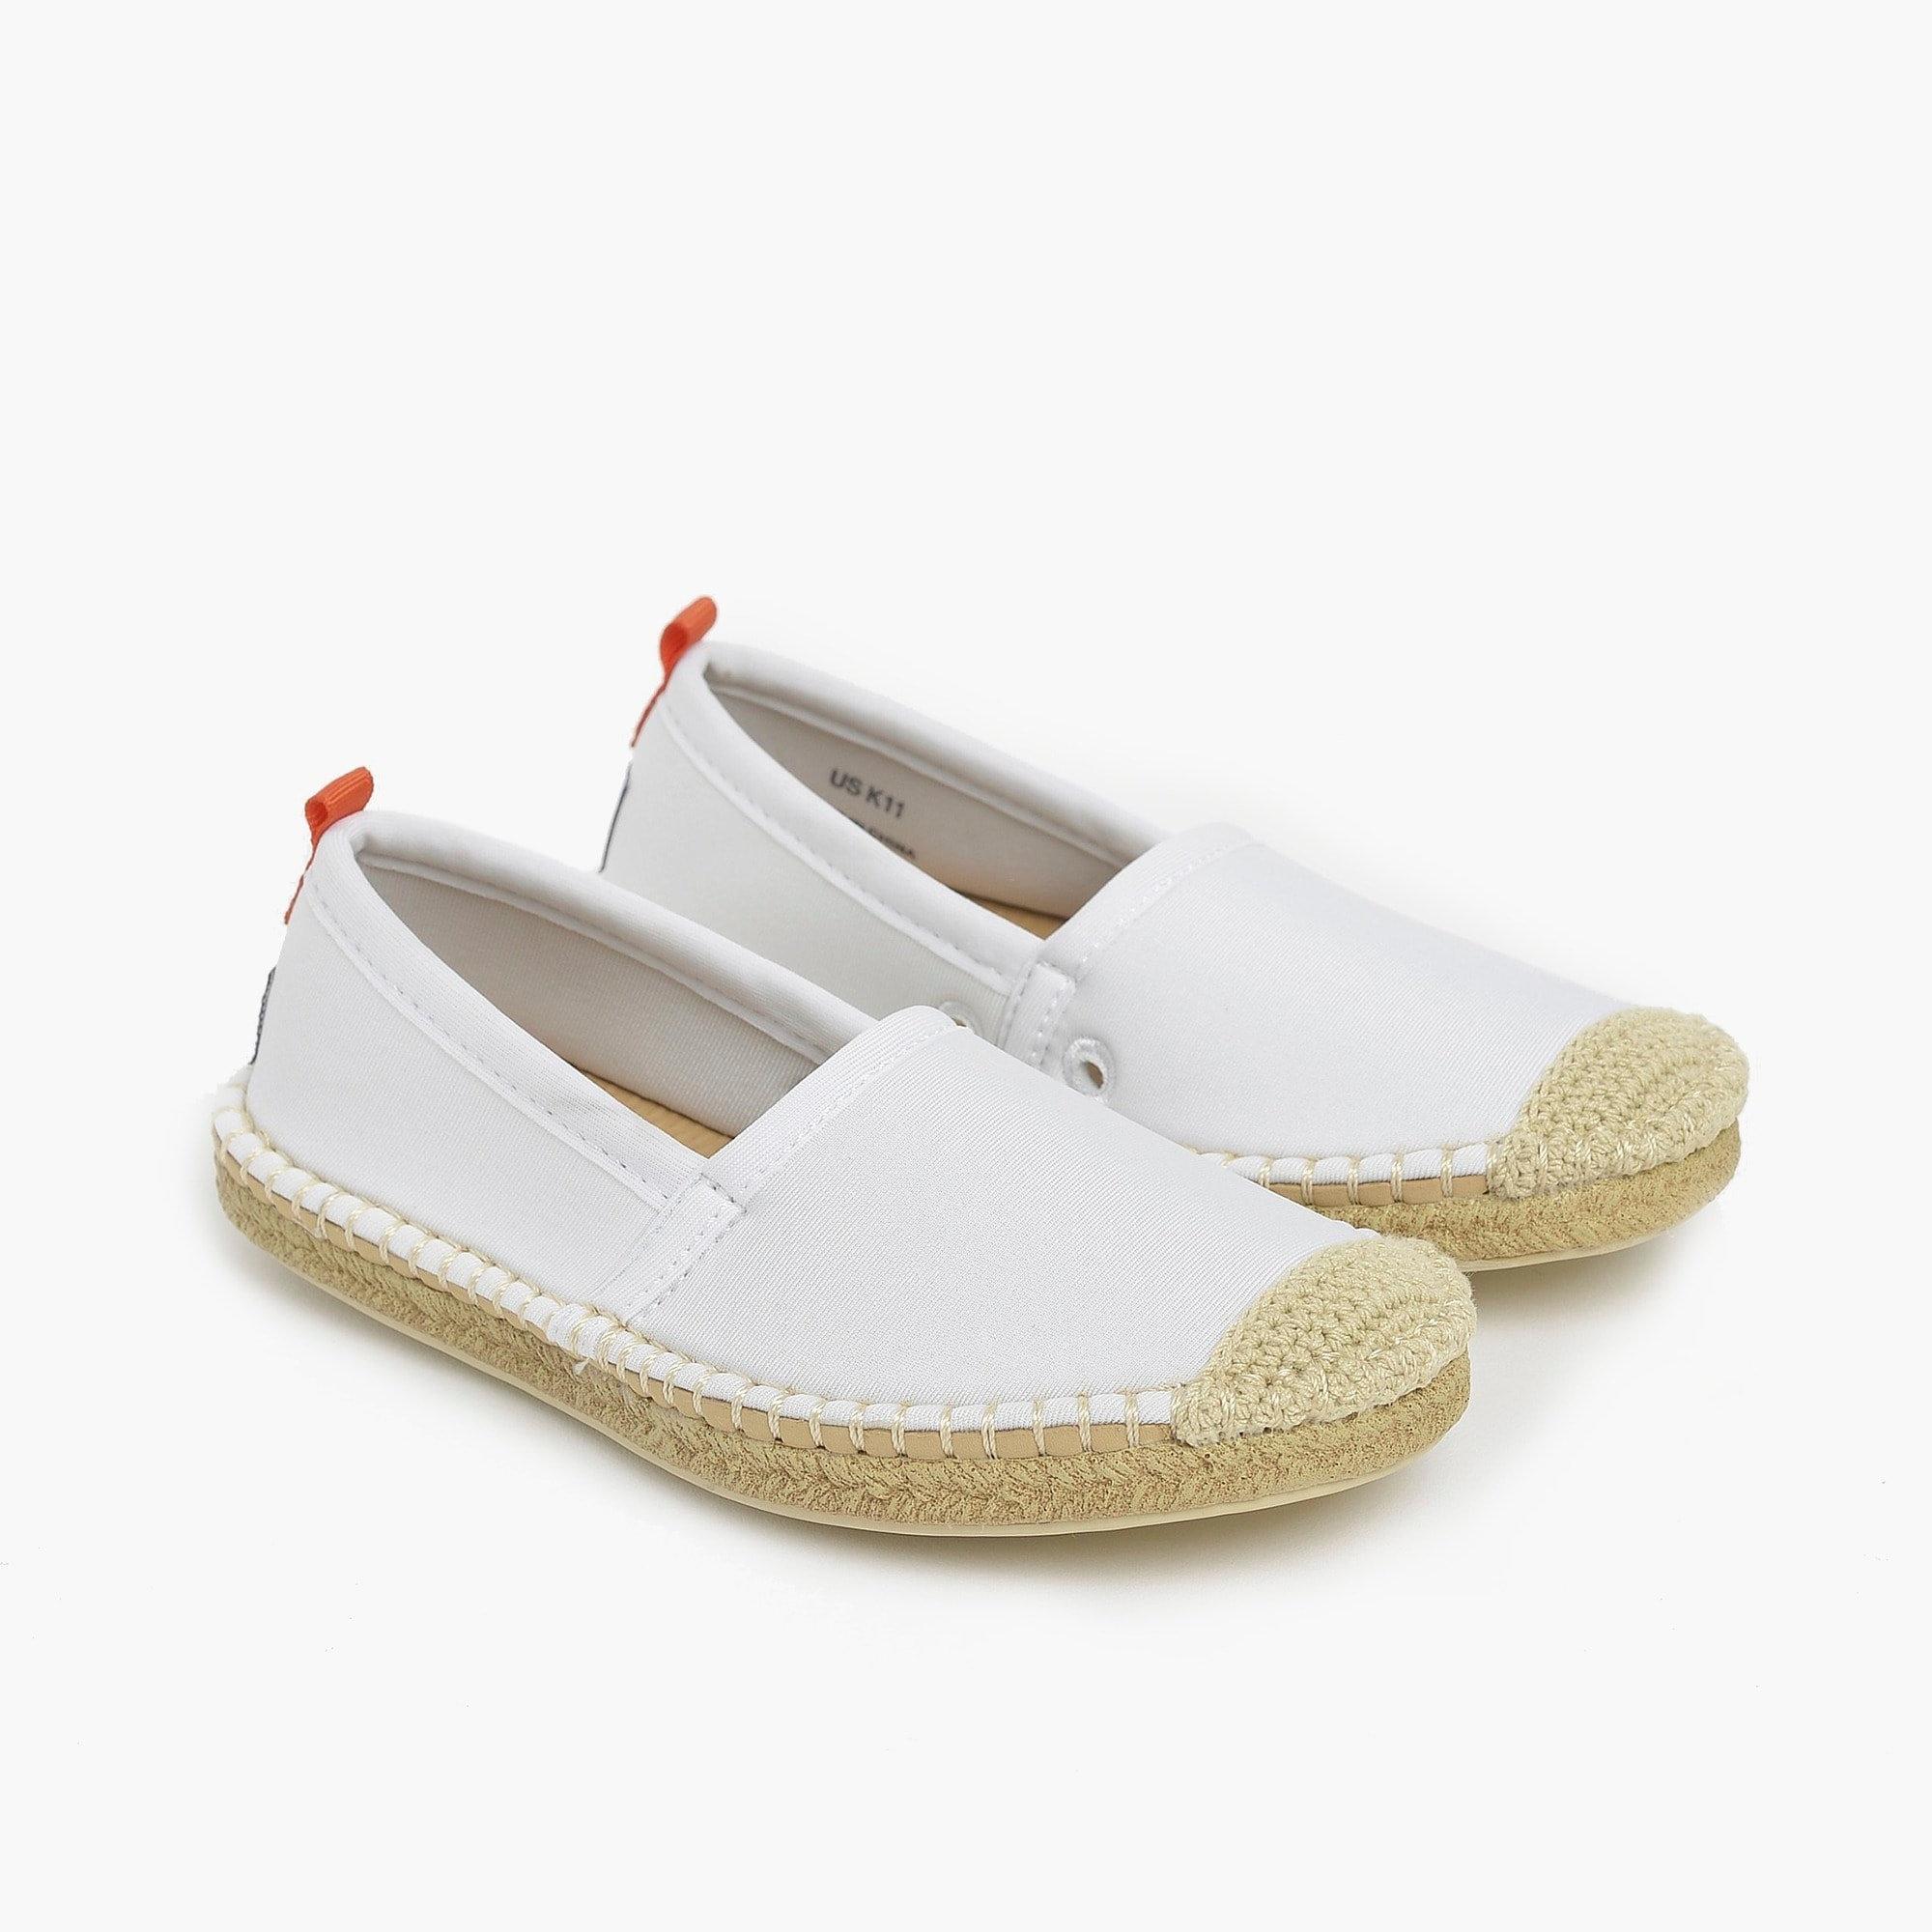 boys Kids' Sea Star Beachwear® Beachcomber espadrille water shoes in white